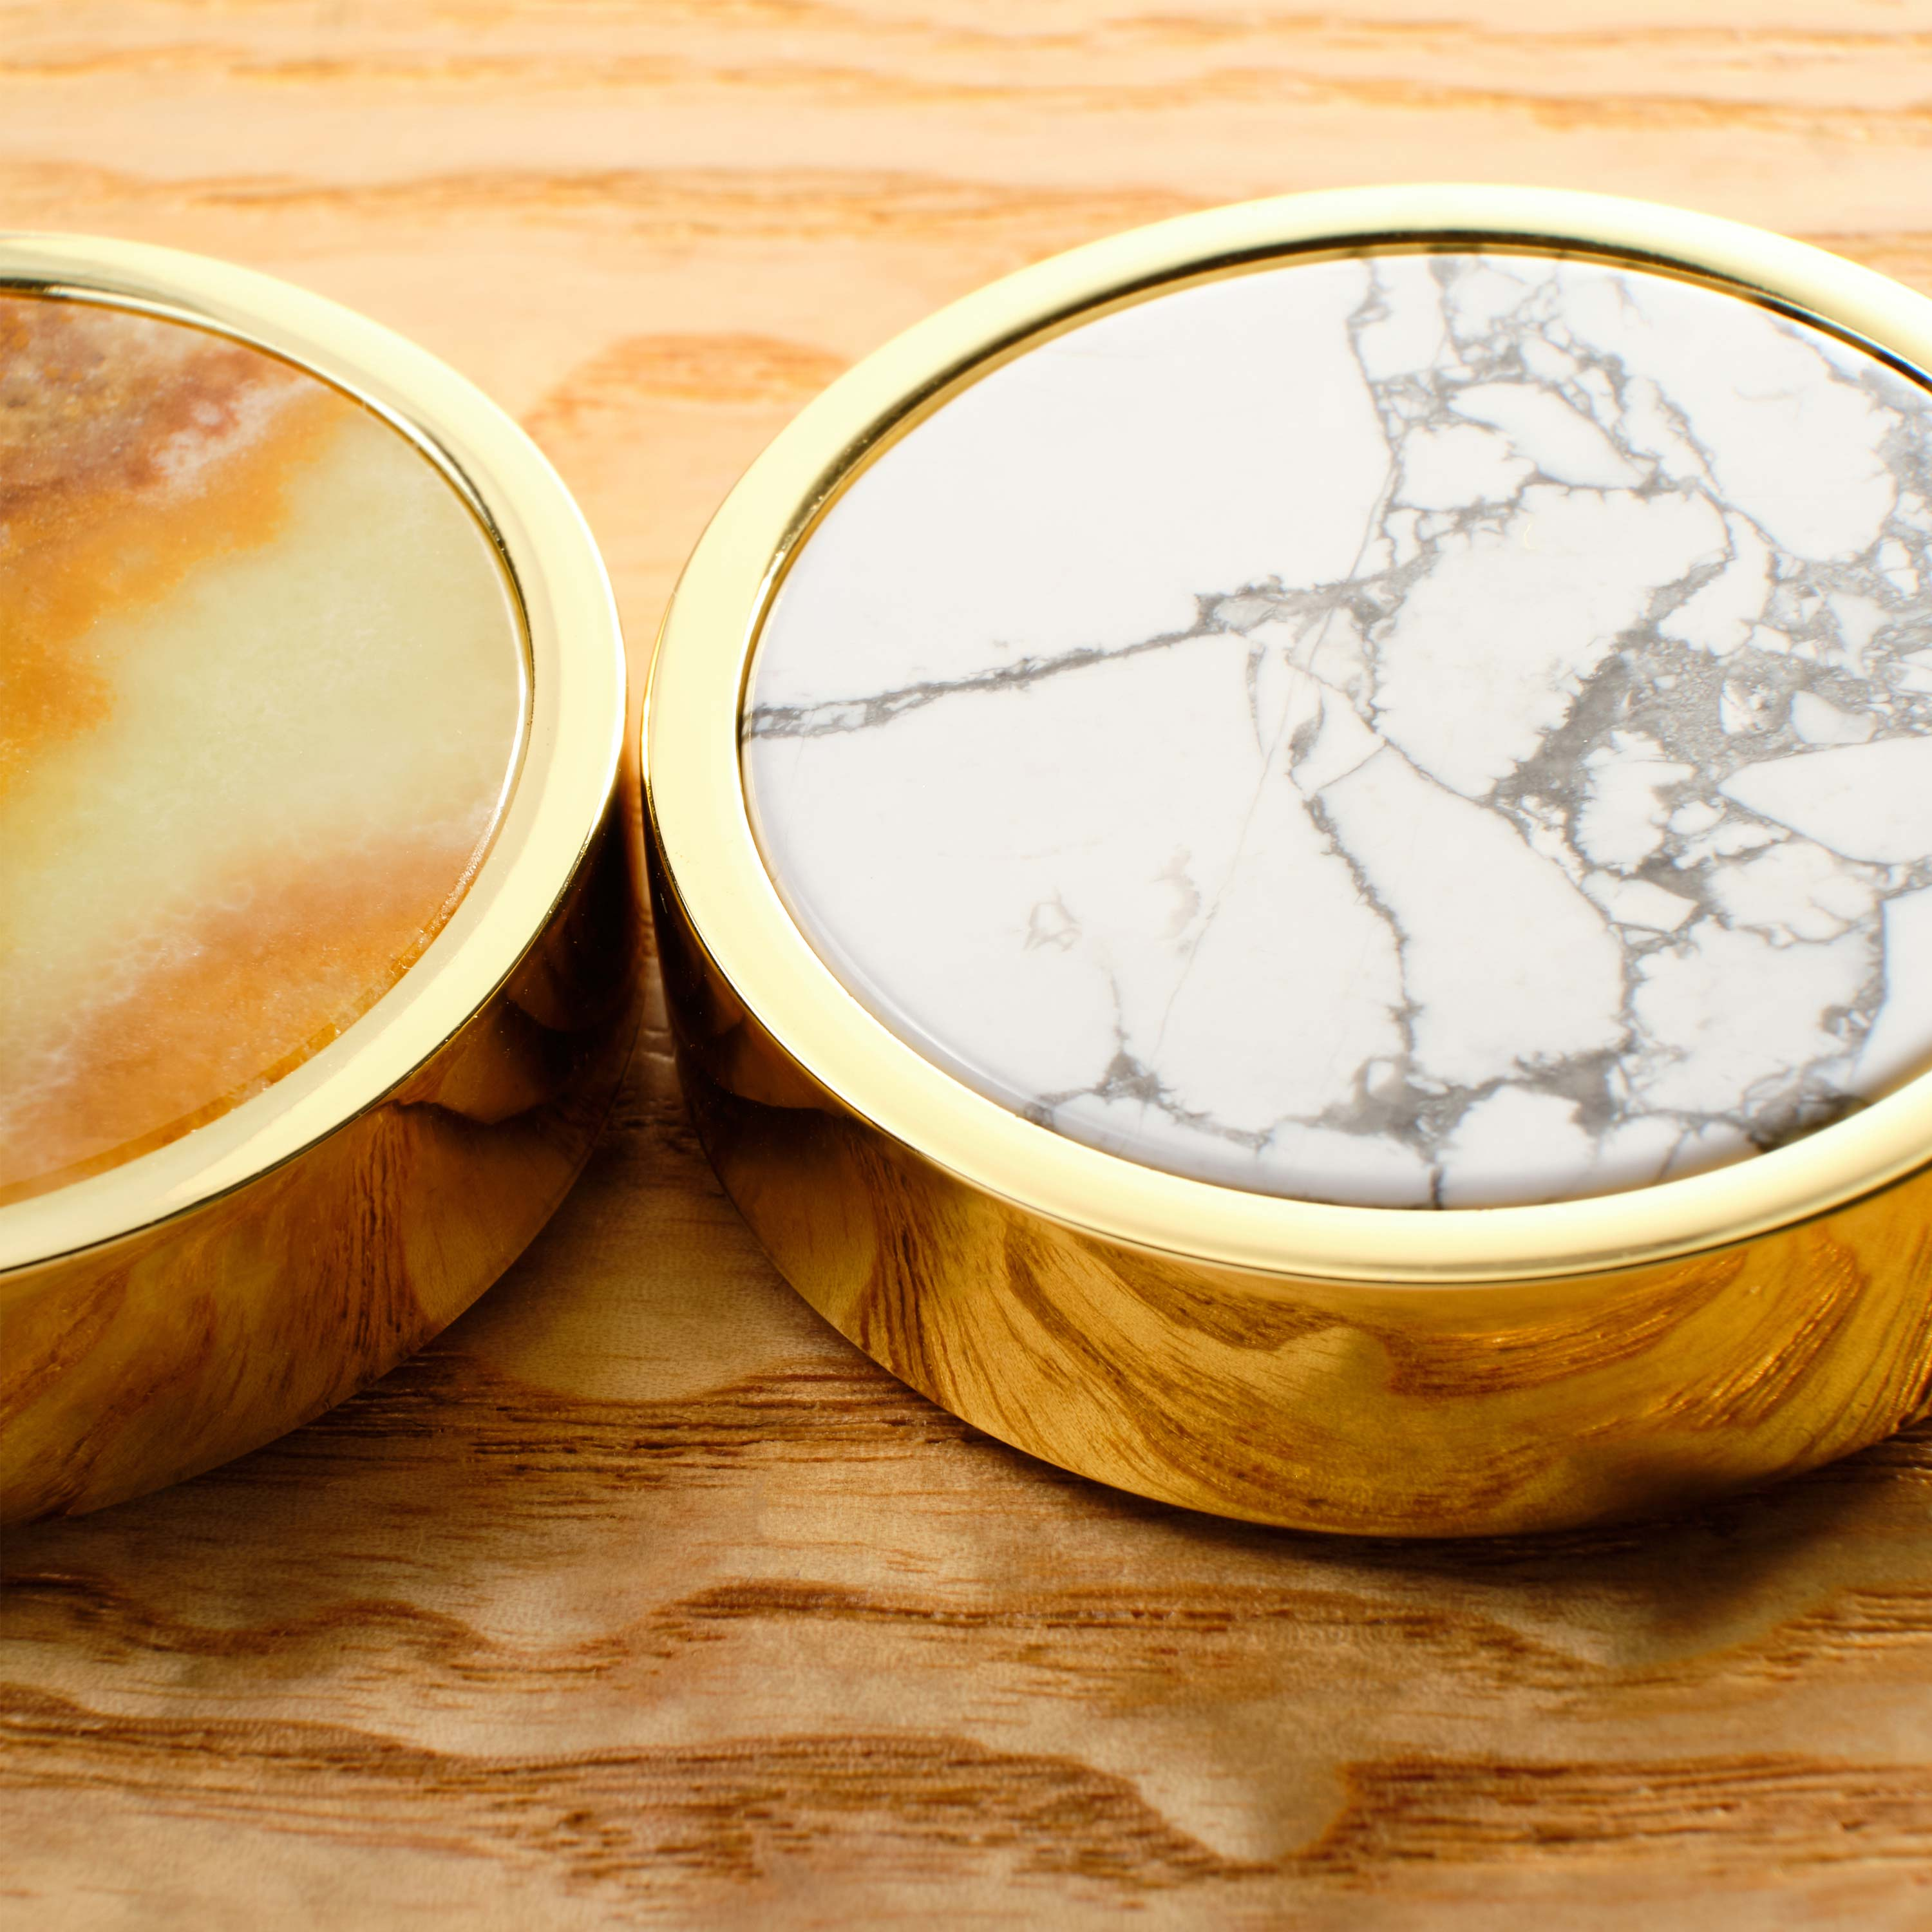 a white marble playing piece